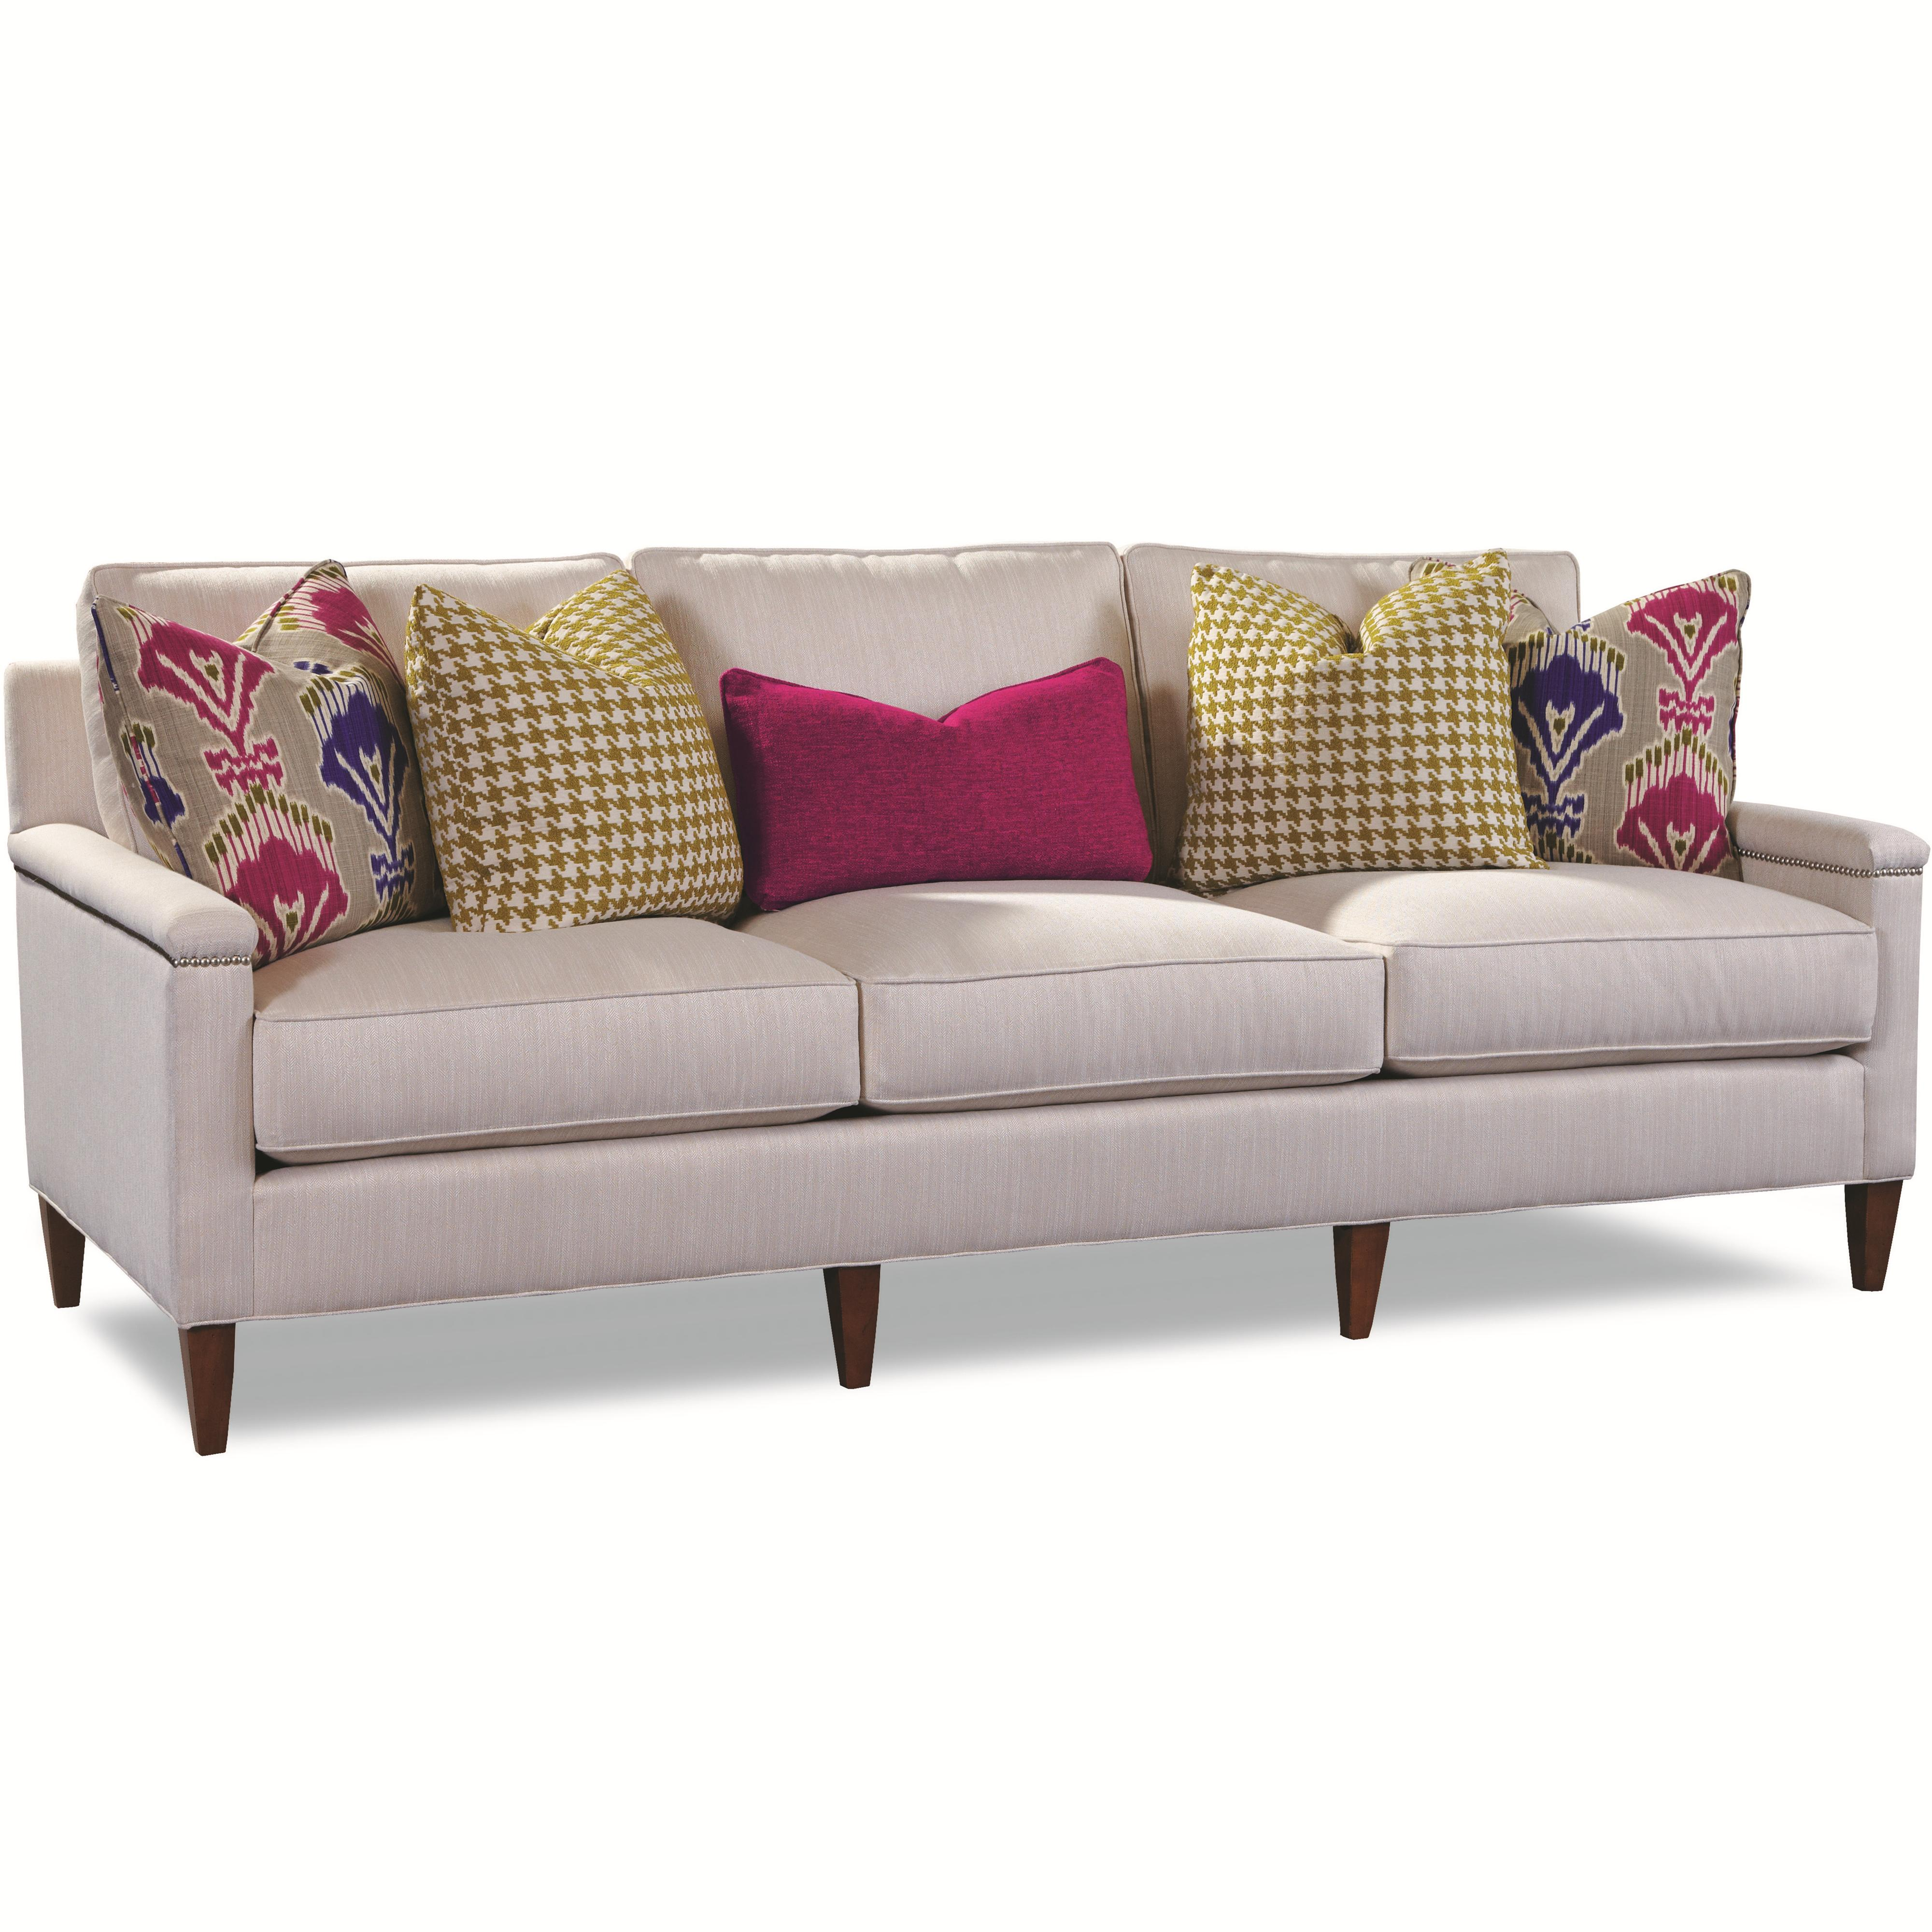 7216 Contemporary Sofa by Huntington House at Belfort Furniture